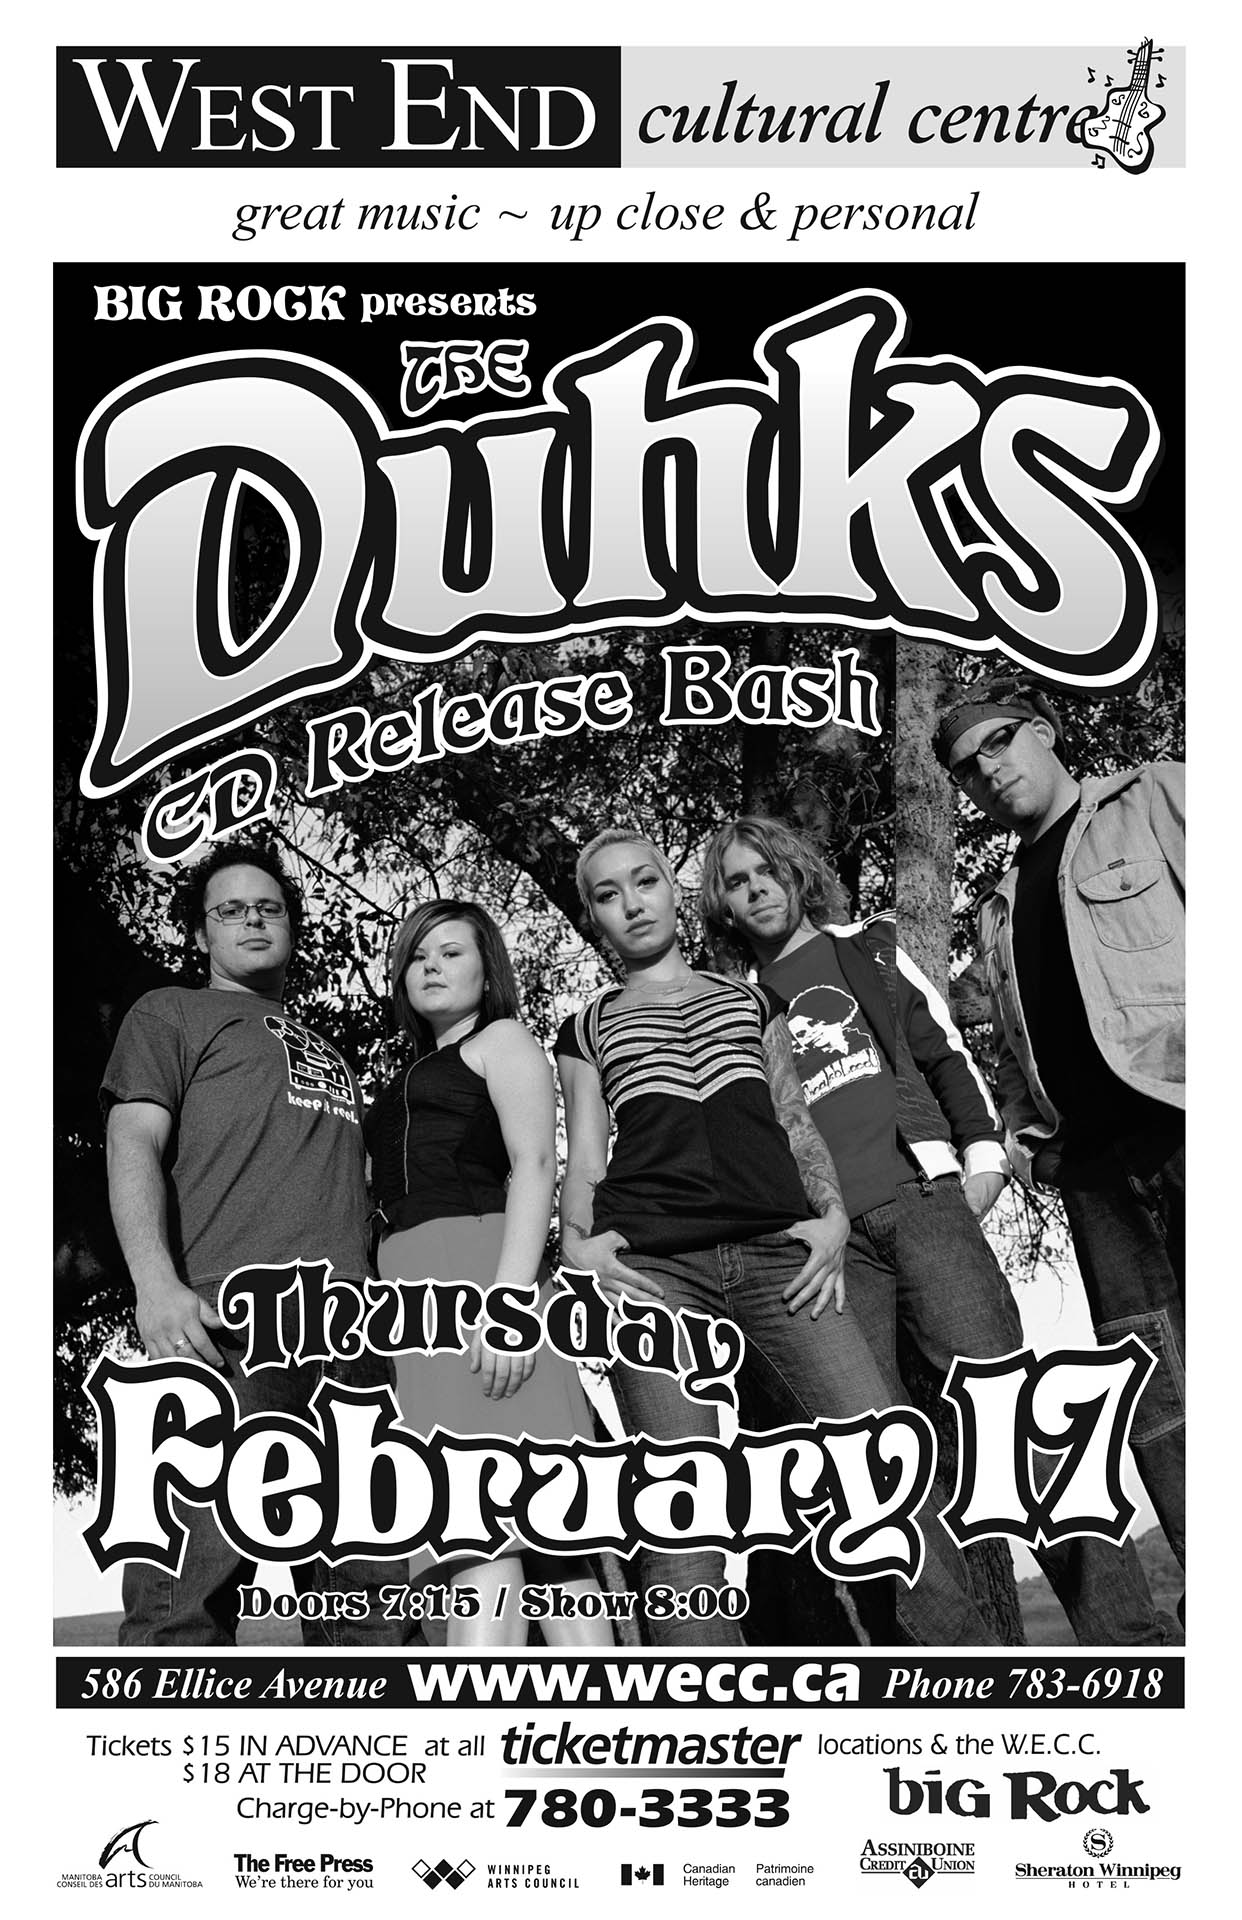 The Duhks - 2005